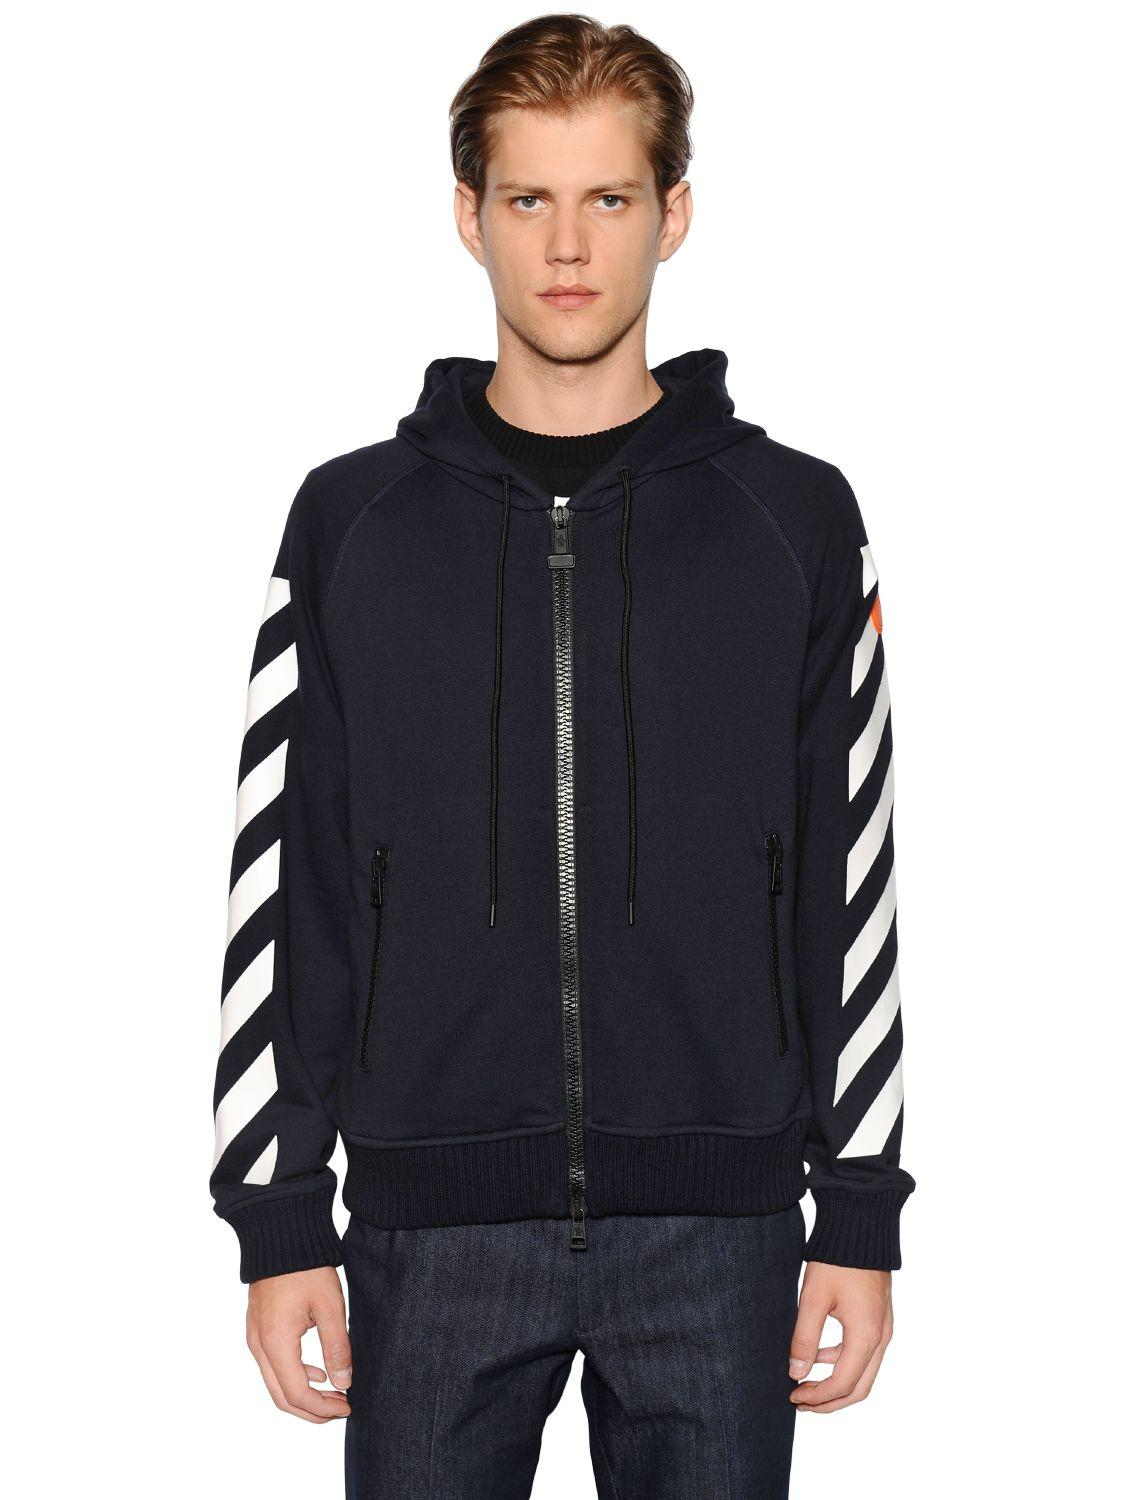 Moncler Rubber Off White Zip-up Hooded Sweatshirt in Black ...